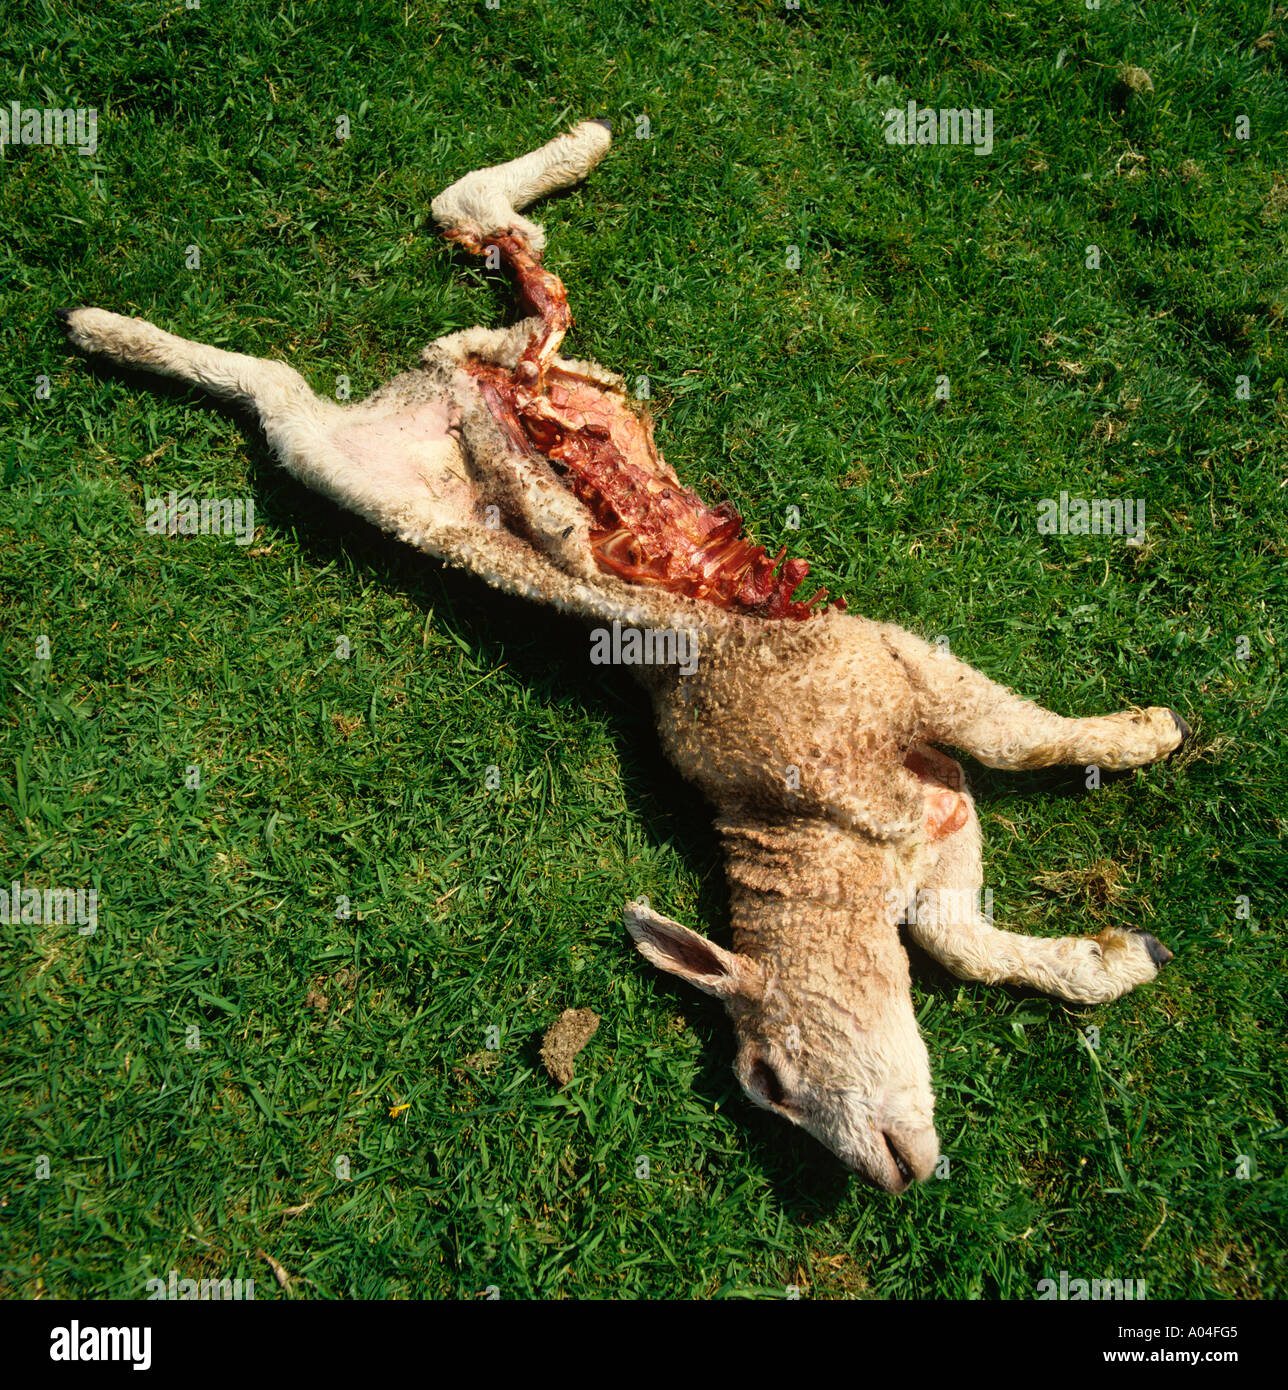 Farming Lamb after being savaged by a Badger - Stock Image